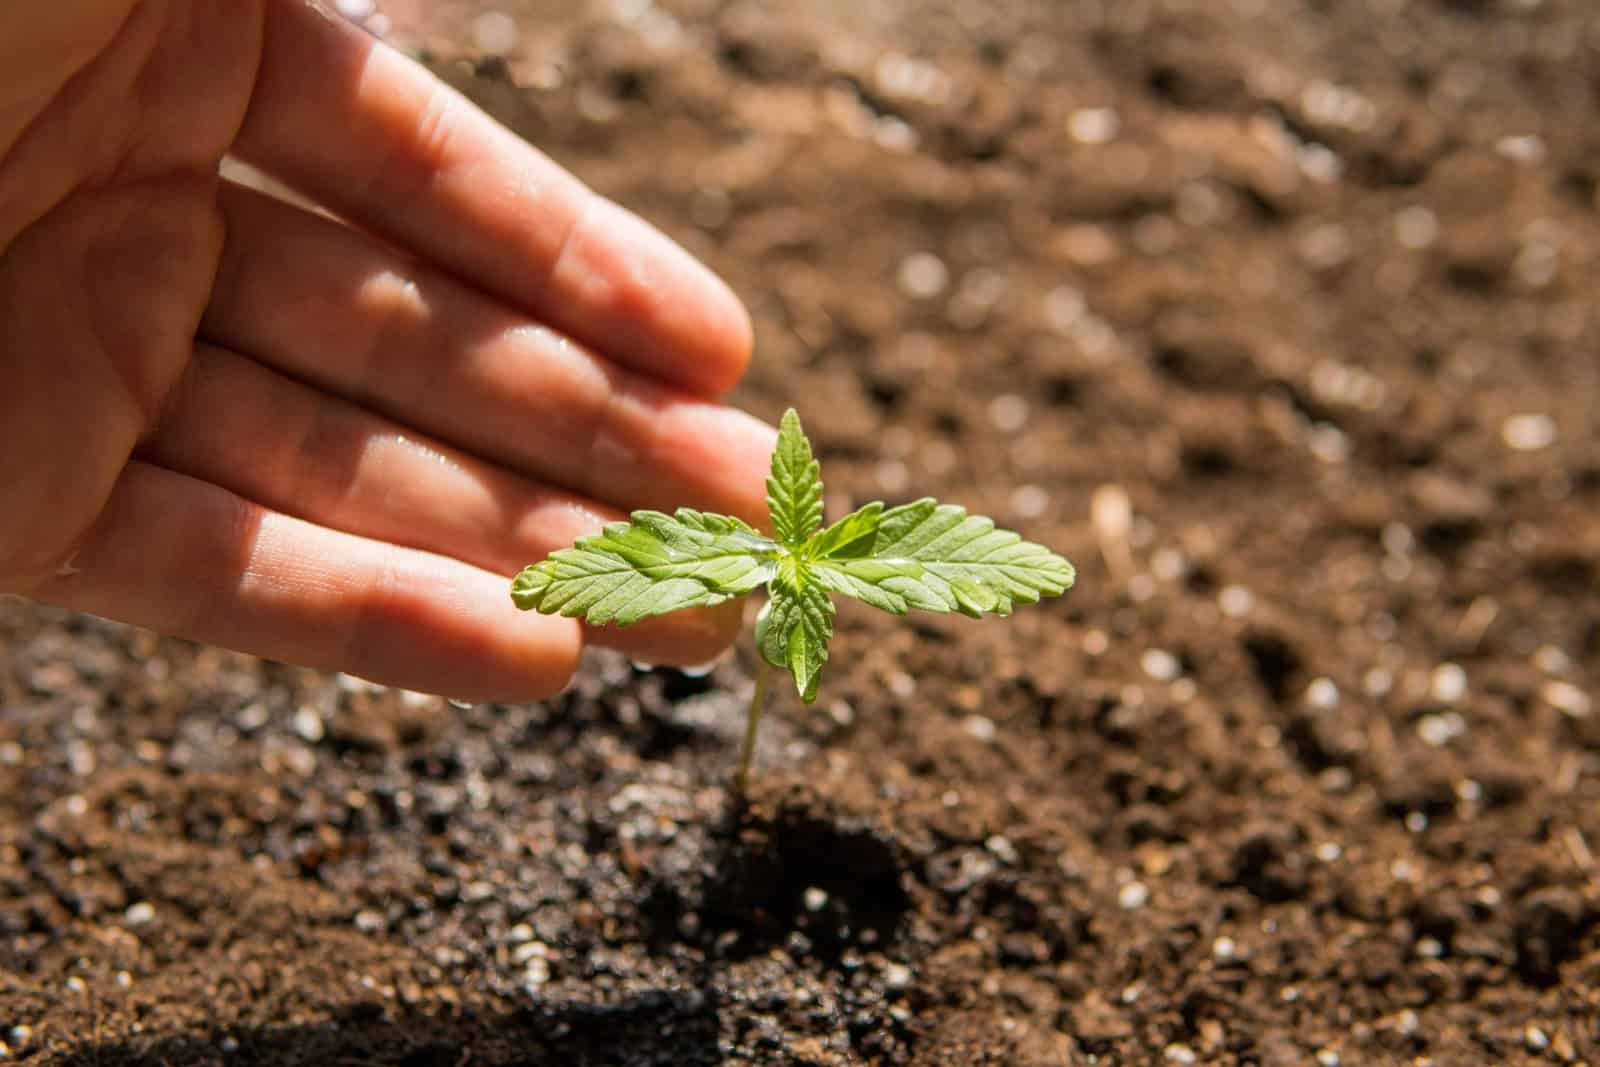 Growing cannabis with compost. Marijuana leaf in dirt.